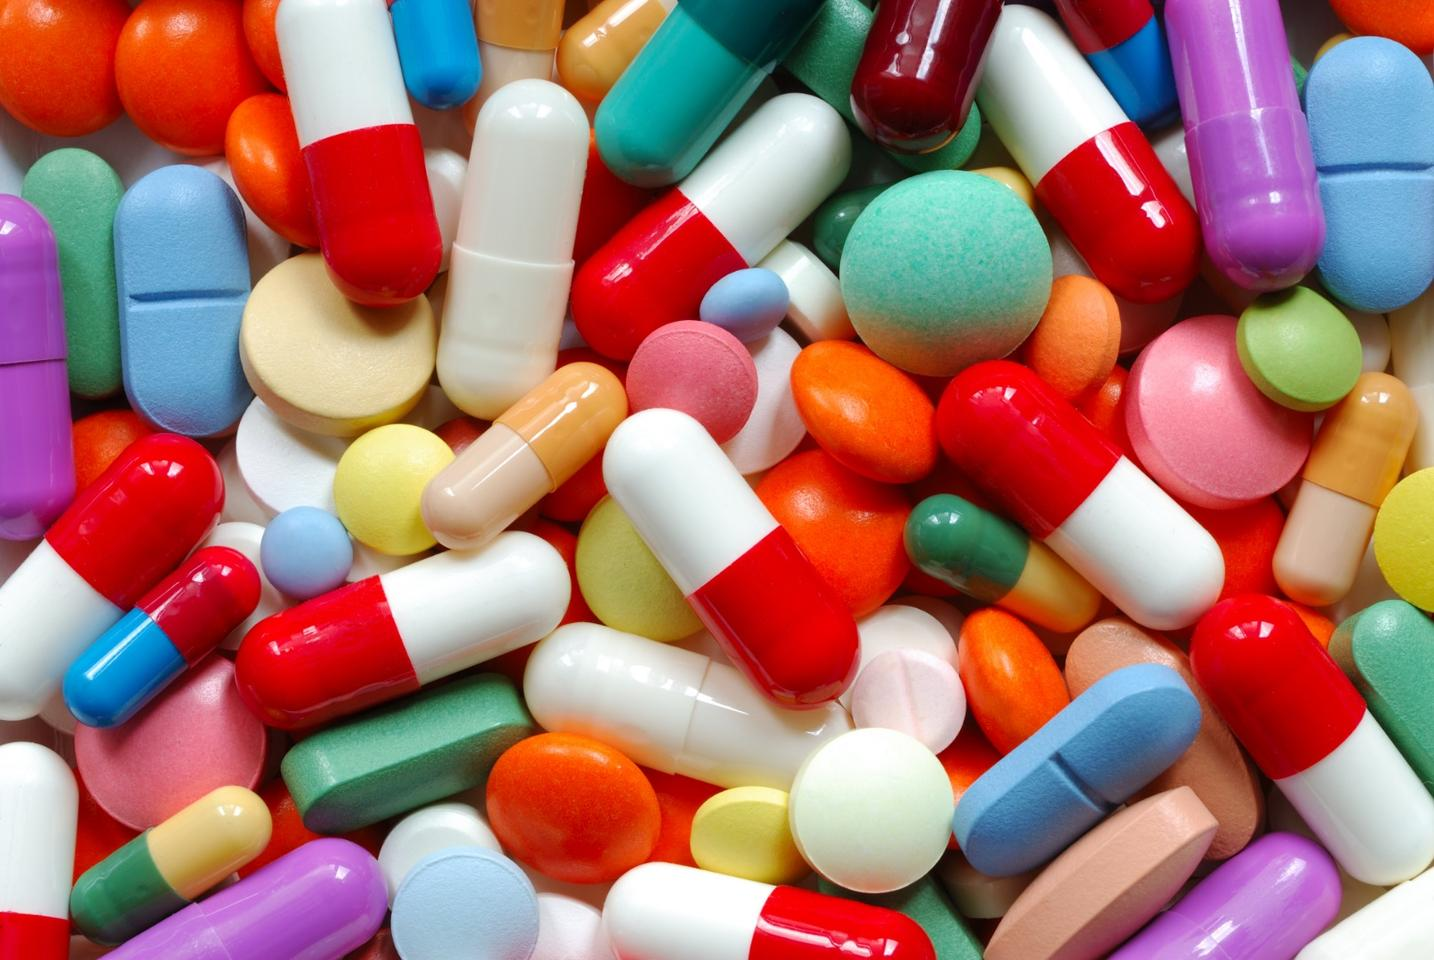 Researchers have found that even non-antibiotic drugs, including antidepressants, can contribute to the development of antibiotic resistant bacteria